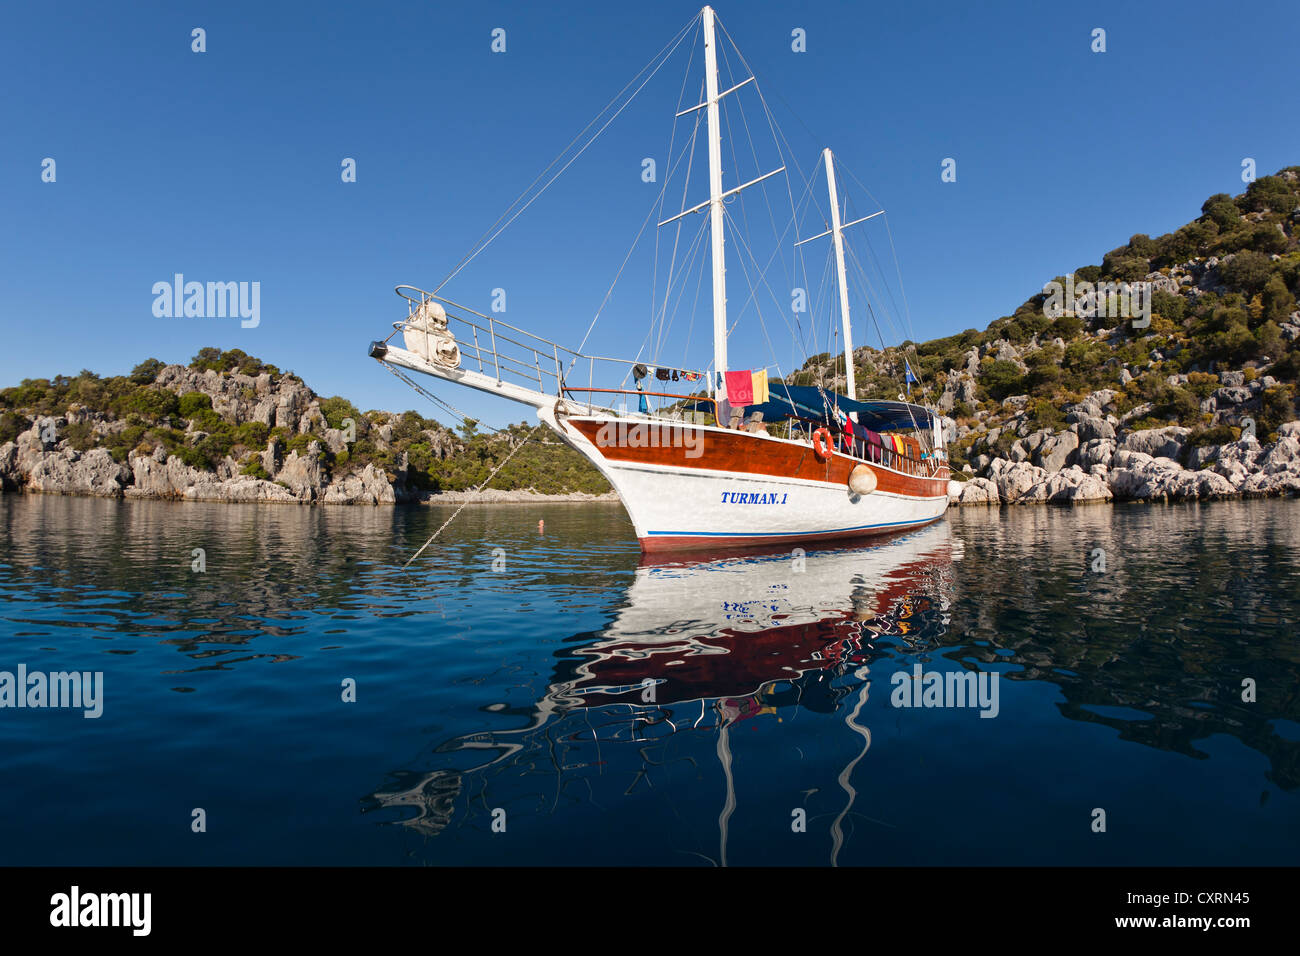 Sailing boat anchored in a bay, sailing trip along the Lycian coast, Lycia, Mediterranean Sea, Turkey, Asia Minor - Stock Image